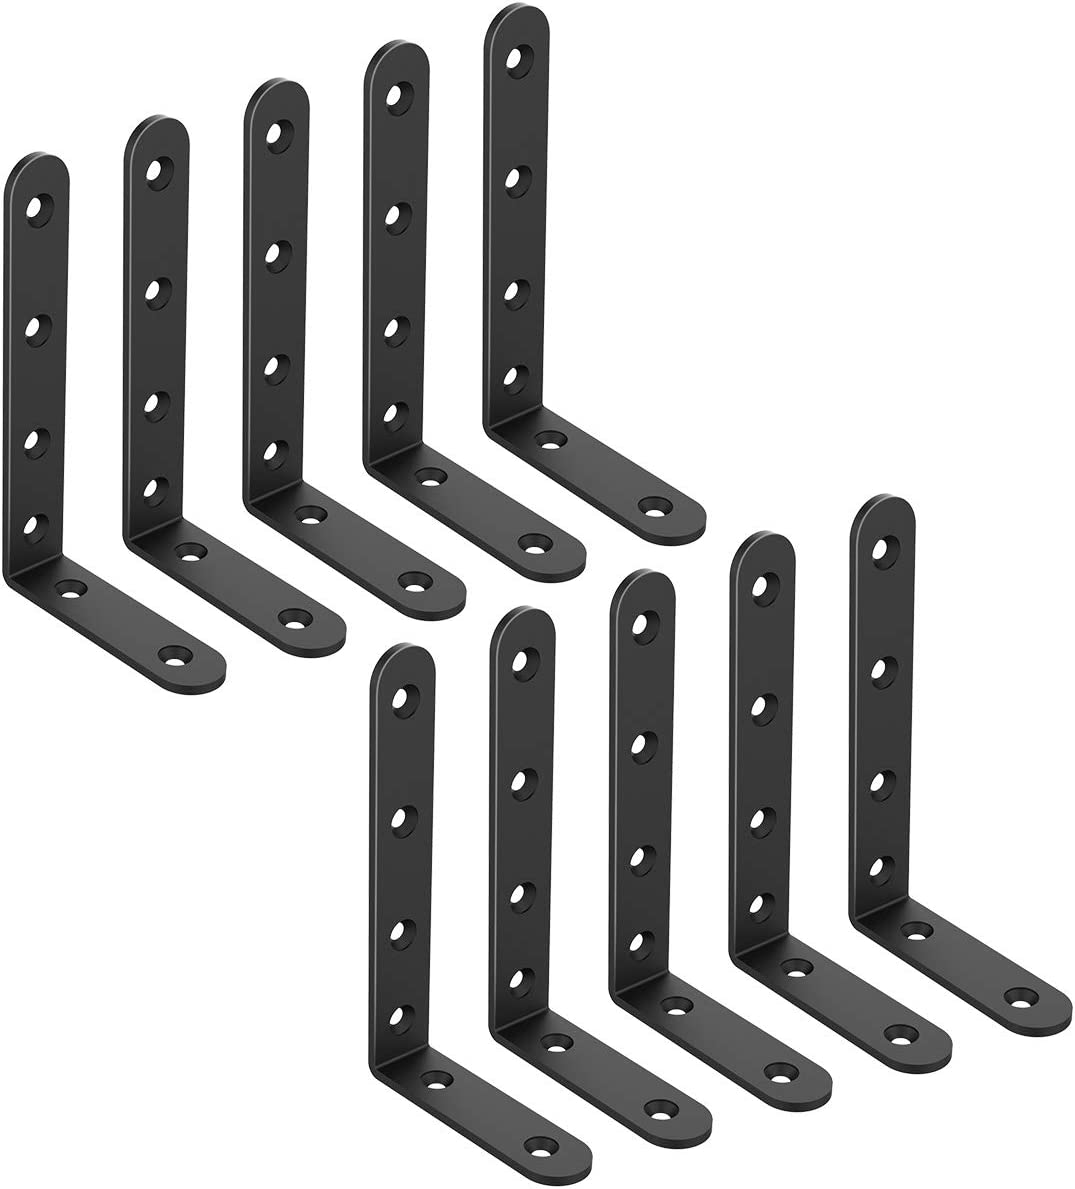 10 Pcs L Bracket Corner Braces 5x3 Inch Metal Heavy Duty Shelf Bracket L Joint Angle Shelf Support Corner Braces for Shelves, Furniture Cabinet with Screws (10 Pack) …